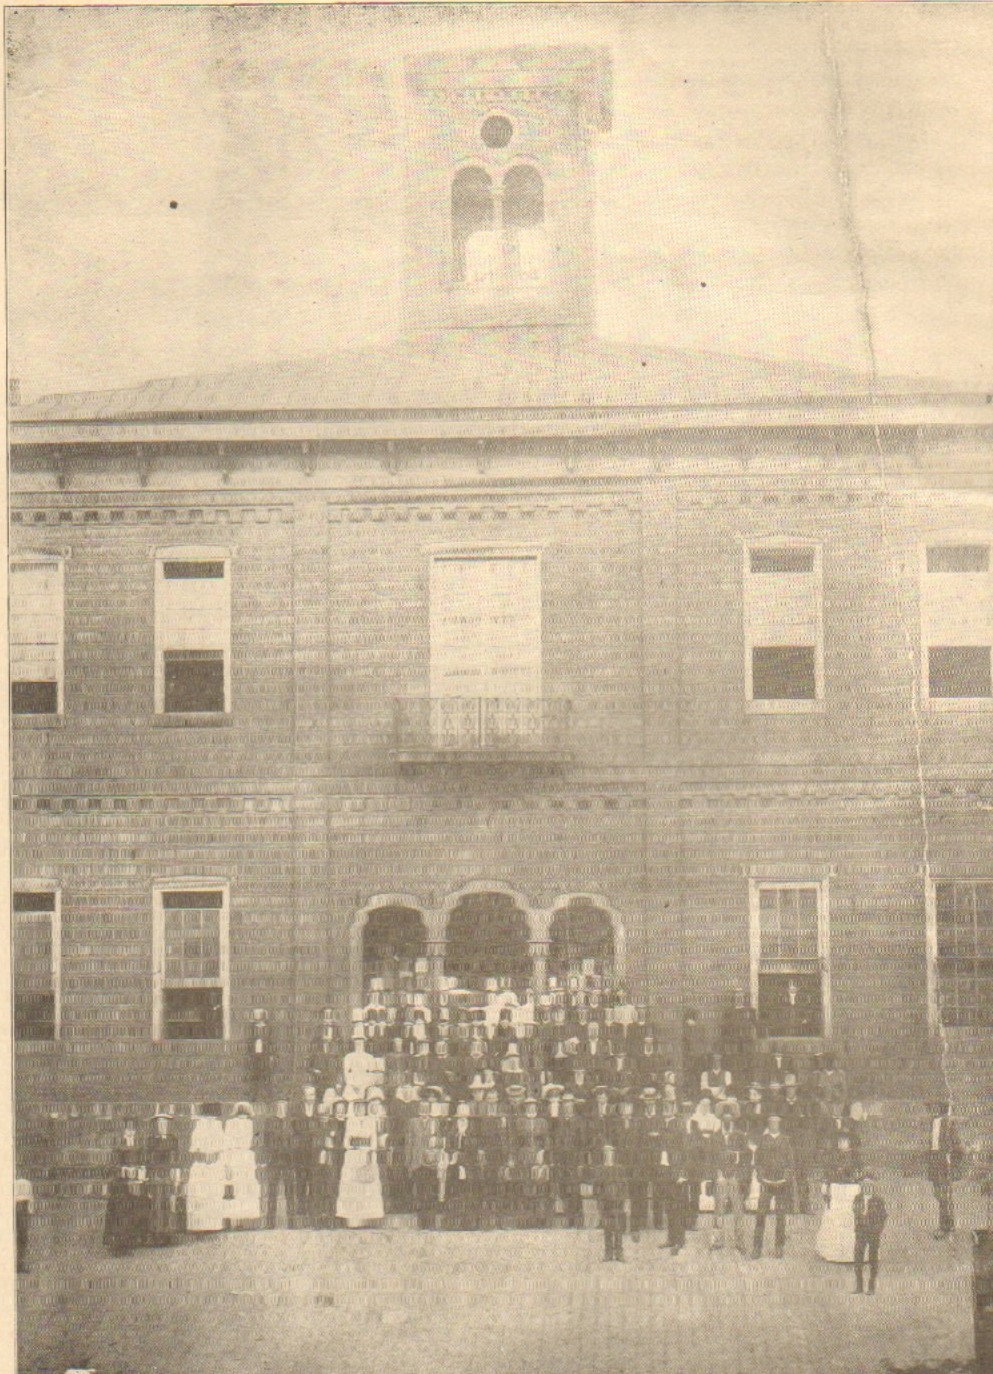 Black and white print of the third Harrison County Courthouse which existed from 1857-1887. The construction began on this building in 1855. This courthouse had a triple arch entrance with a second-floor balcony and central bell tower.